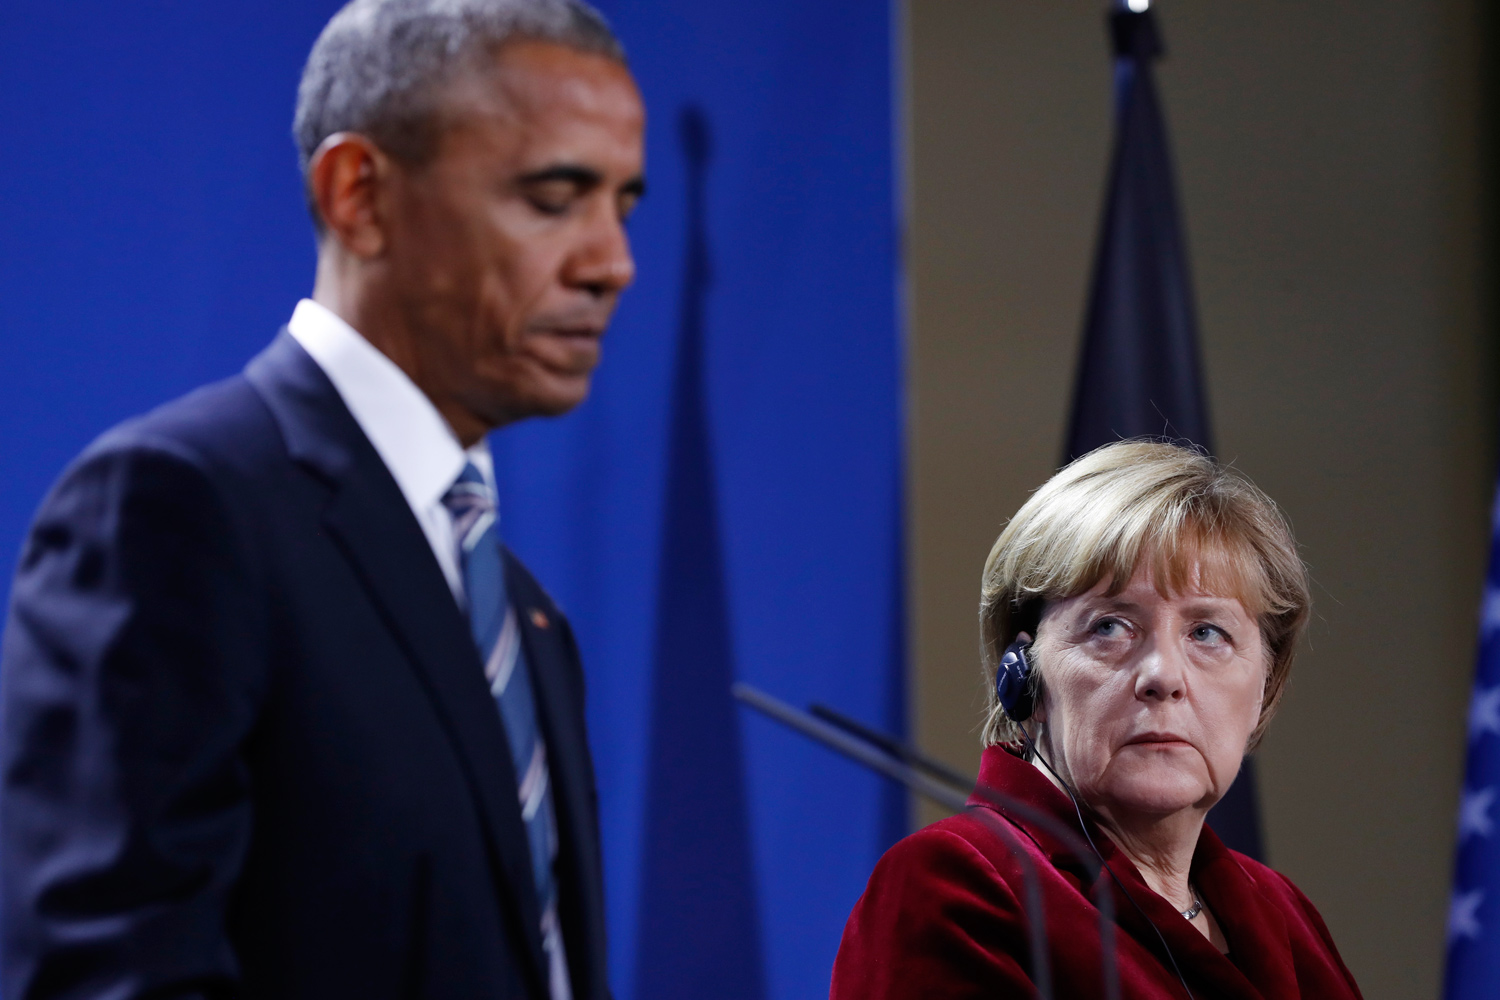 Why the Germans are disappointed in and dismayed by Obama